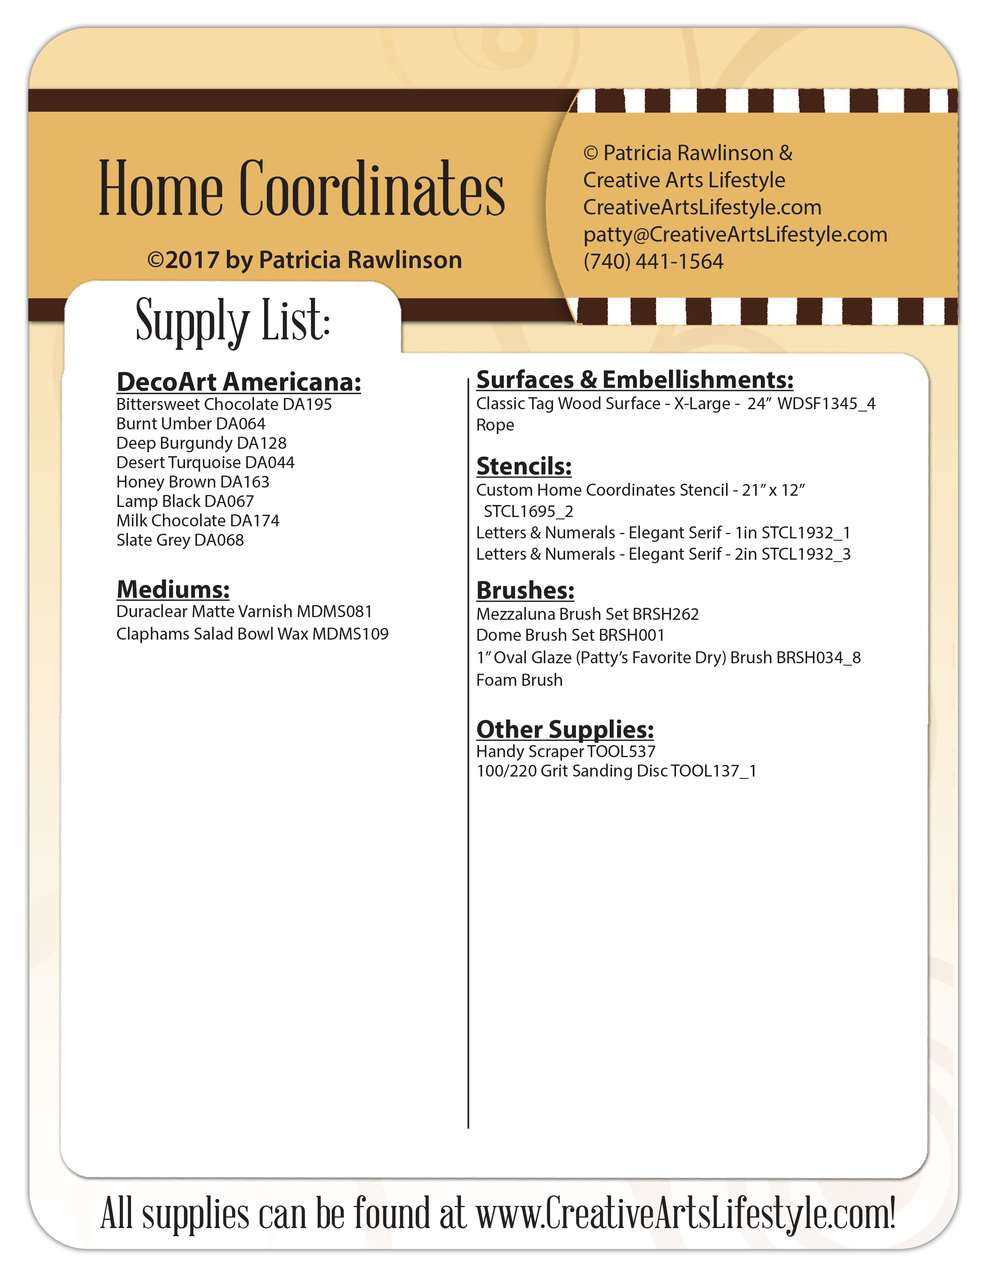 Home Coordinates - Pattern Packet - Patricia Rawlinson